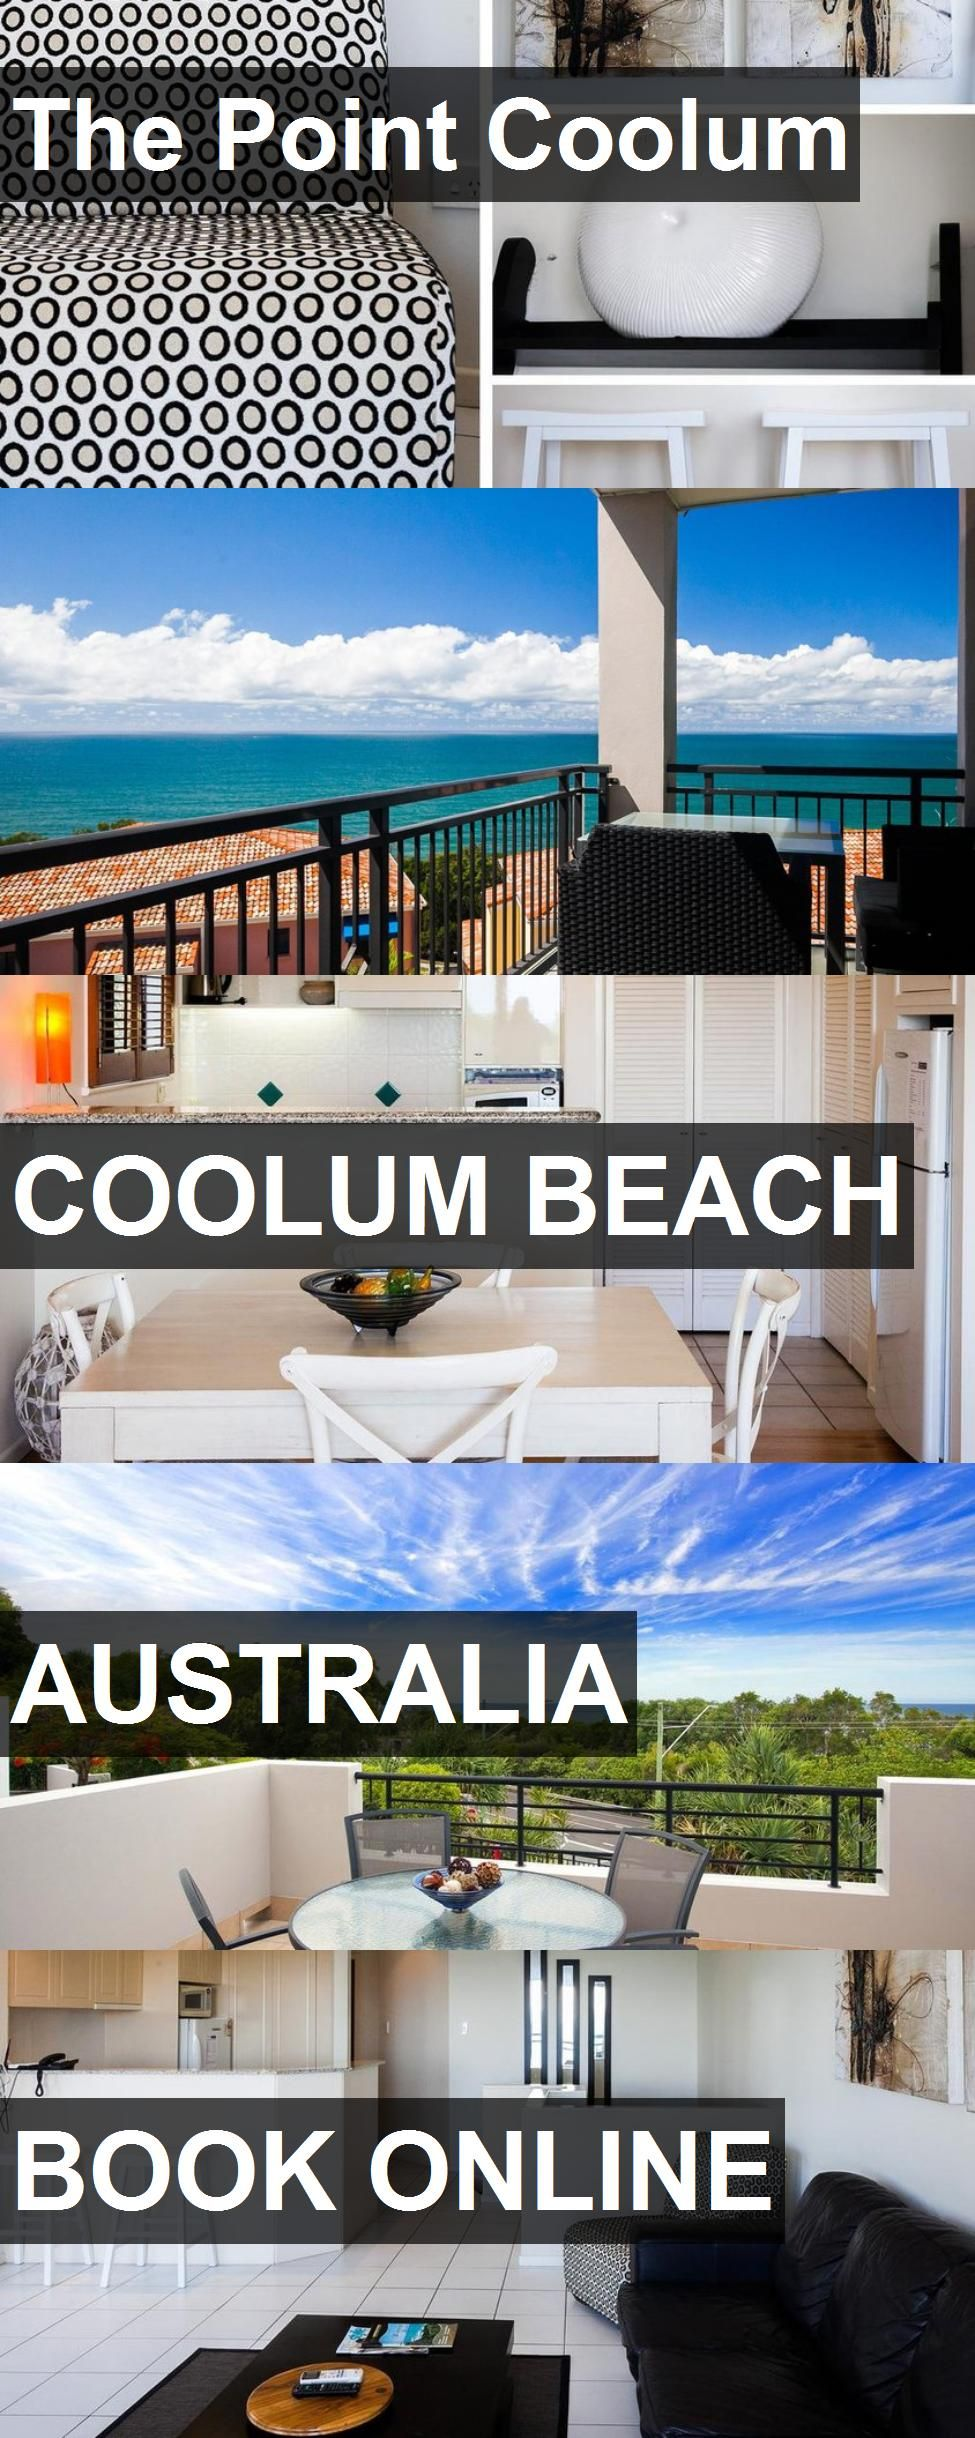 Hotel The Point Coolum In Coolum Beach, Australia. For